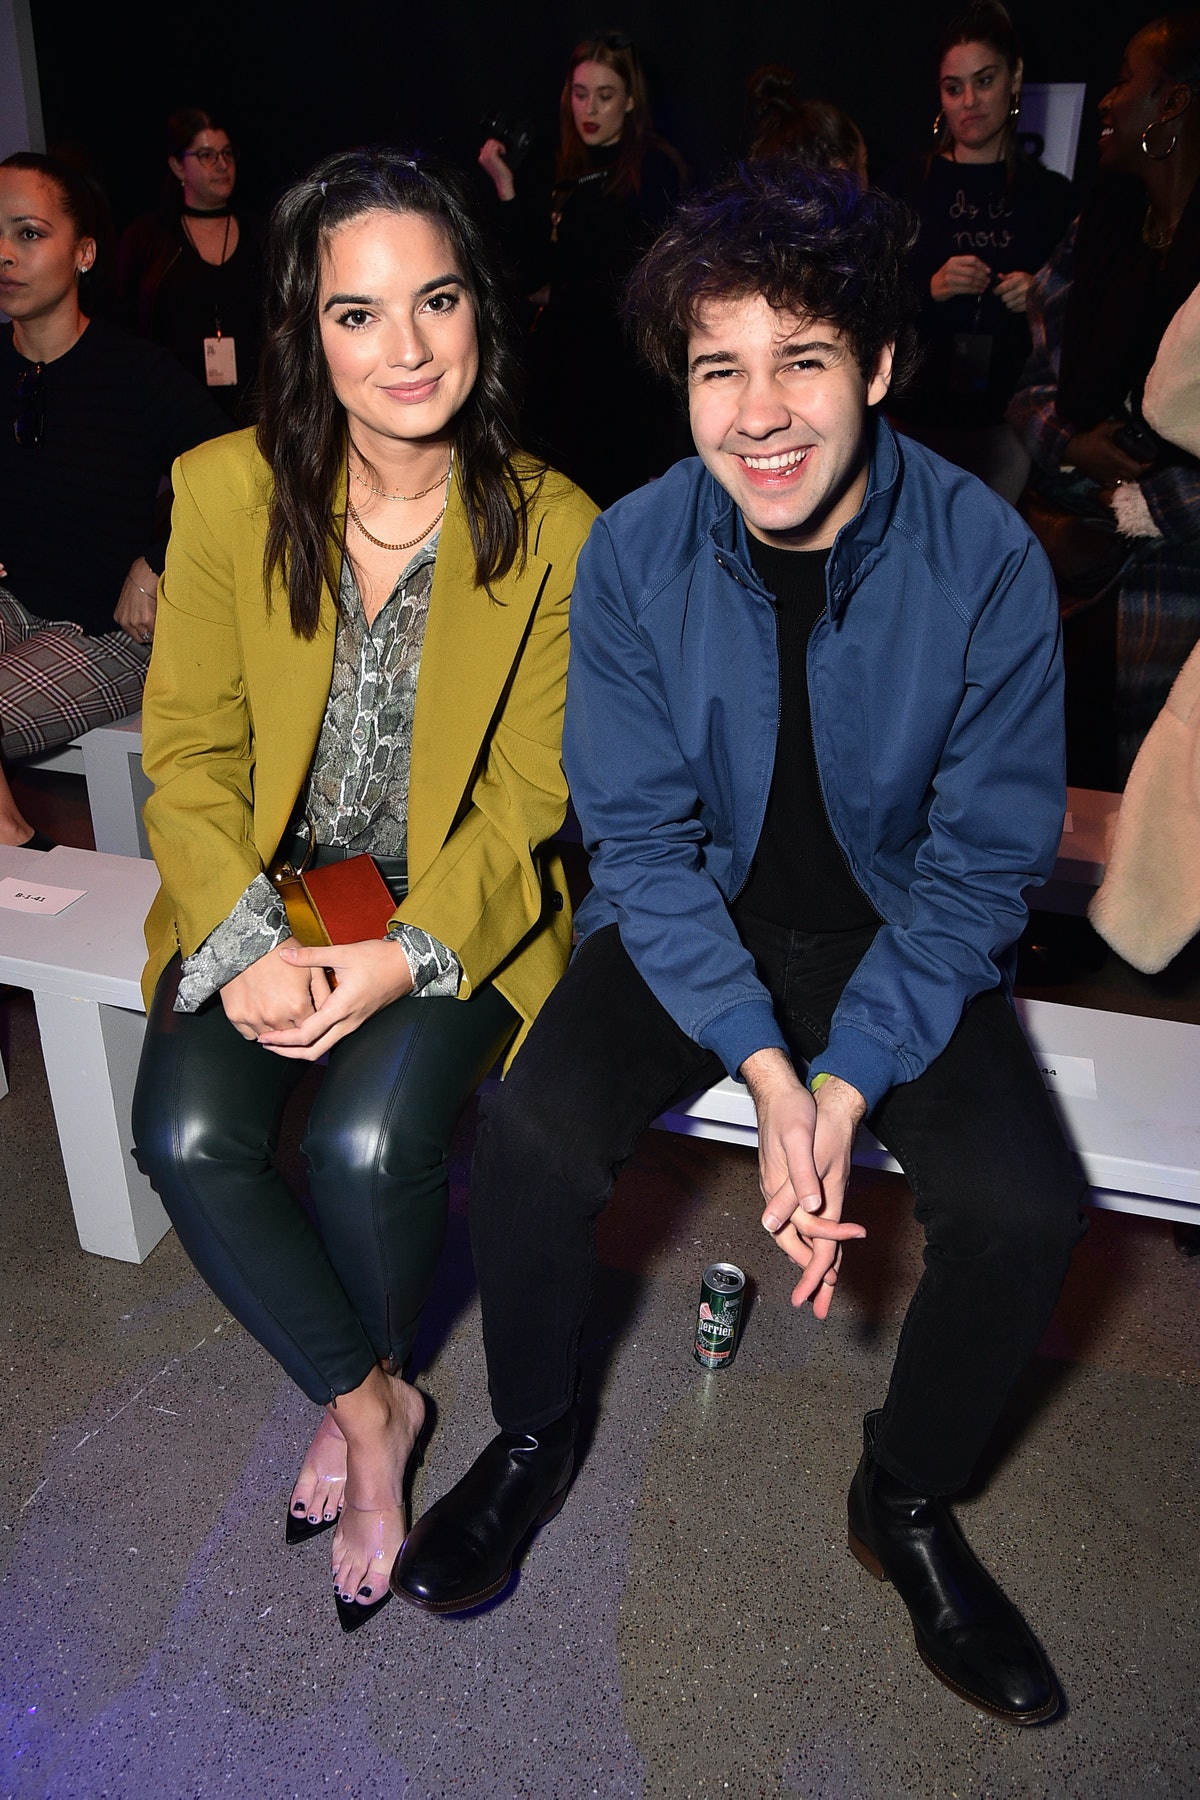 NEW YORK, NEW YORK - FEBRUARY 12: Natalie Mariduena (L) and David Dobrik attend the Aliette fashion show during February 2020 - New York Fashion Week: The Shows at Gallery II at Spring Studios on February 12, 2020 in New York City. (Photo by Theo Wargo/Getty Images)